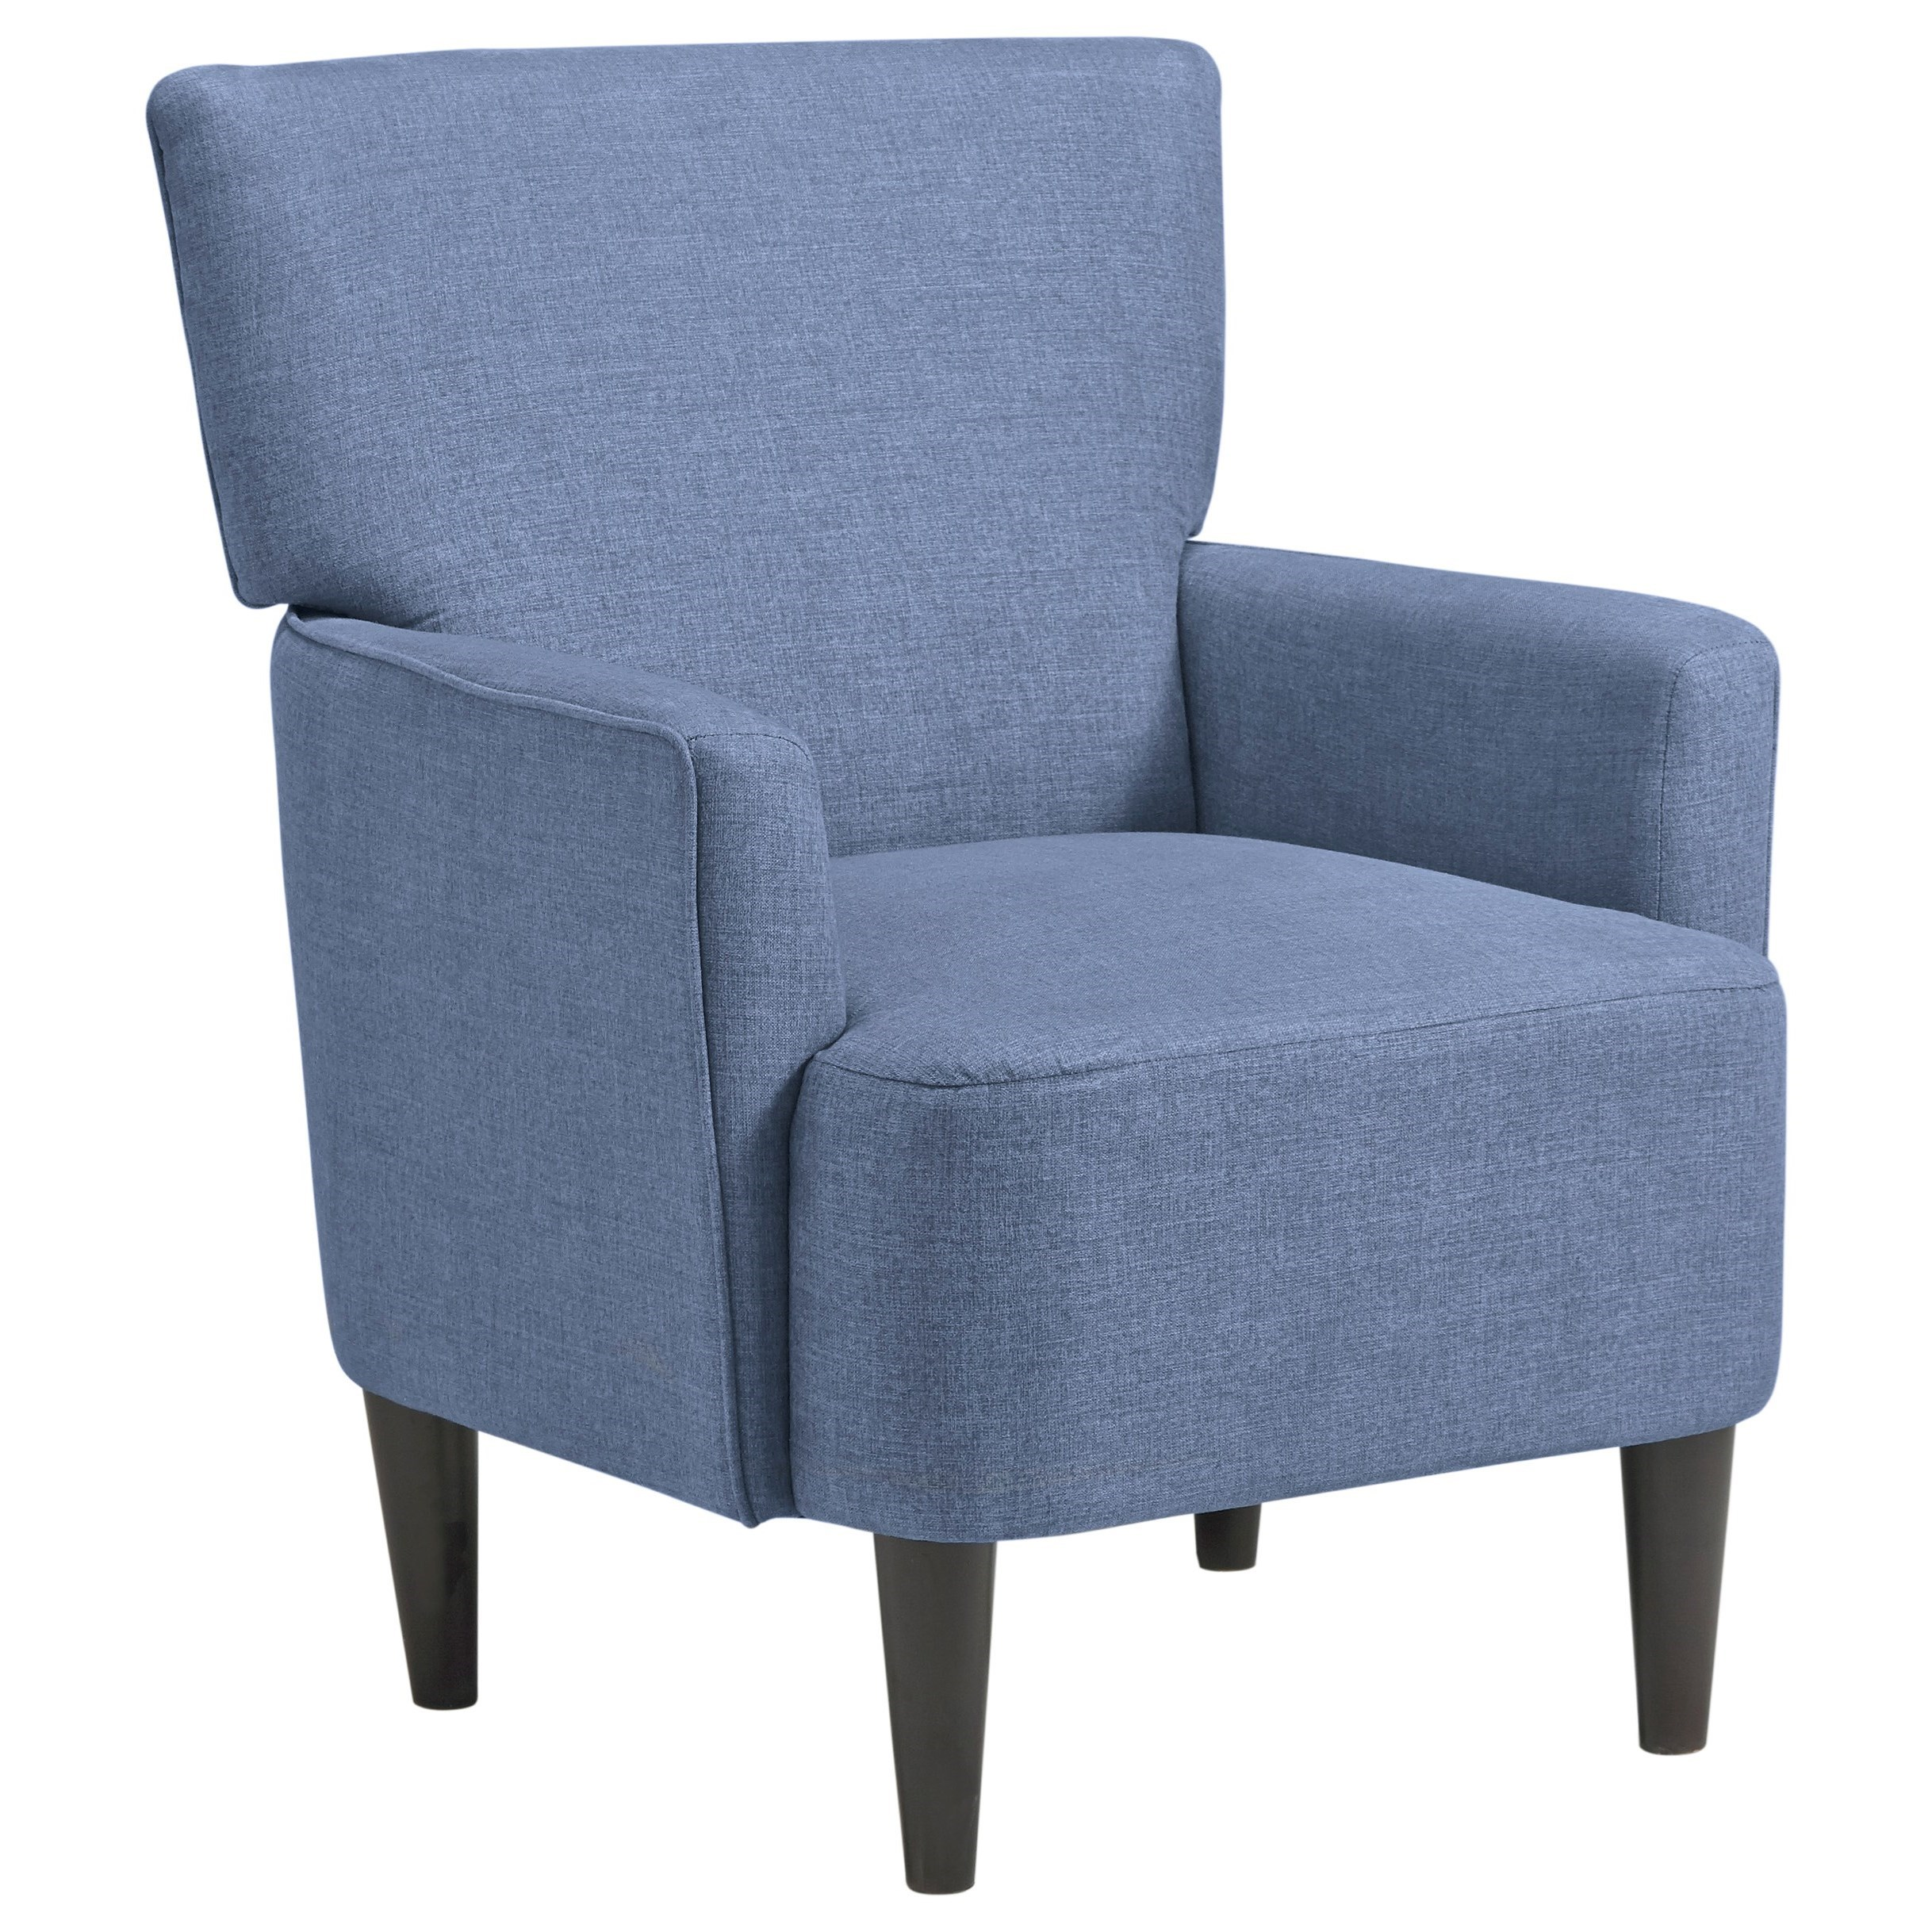 Hansridge Accent Chair by Signature Design by Ashley at Northeast Factory Direct